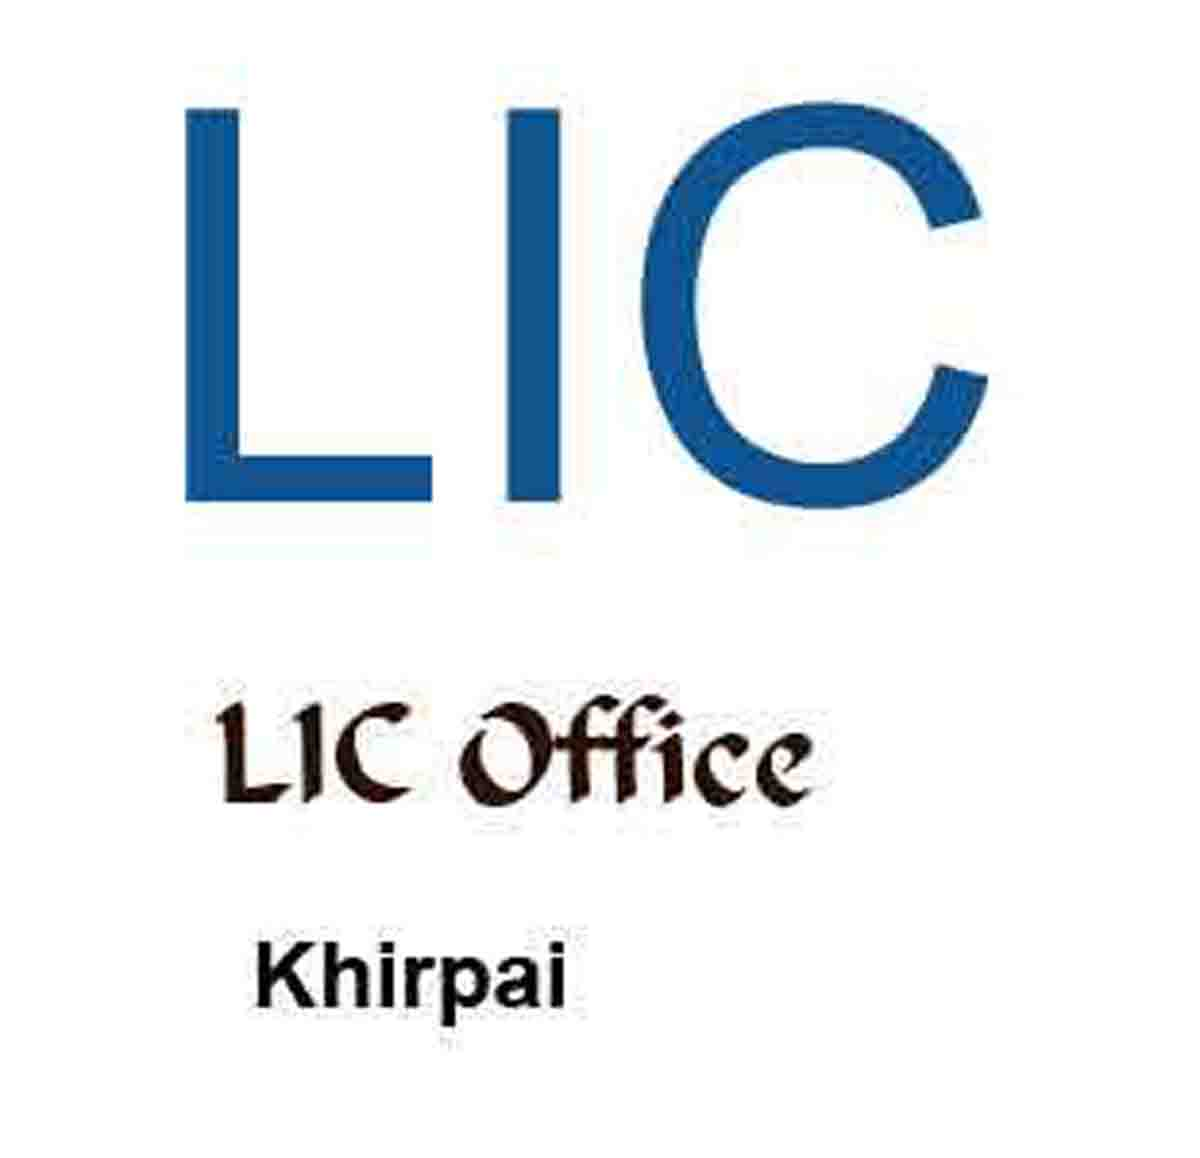 lic office khirpai